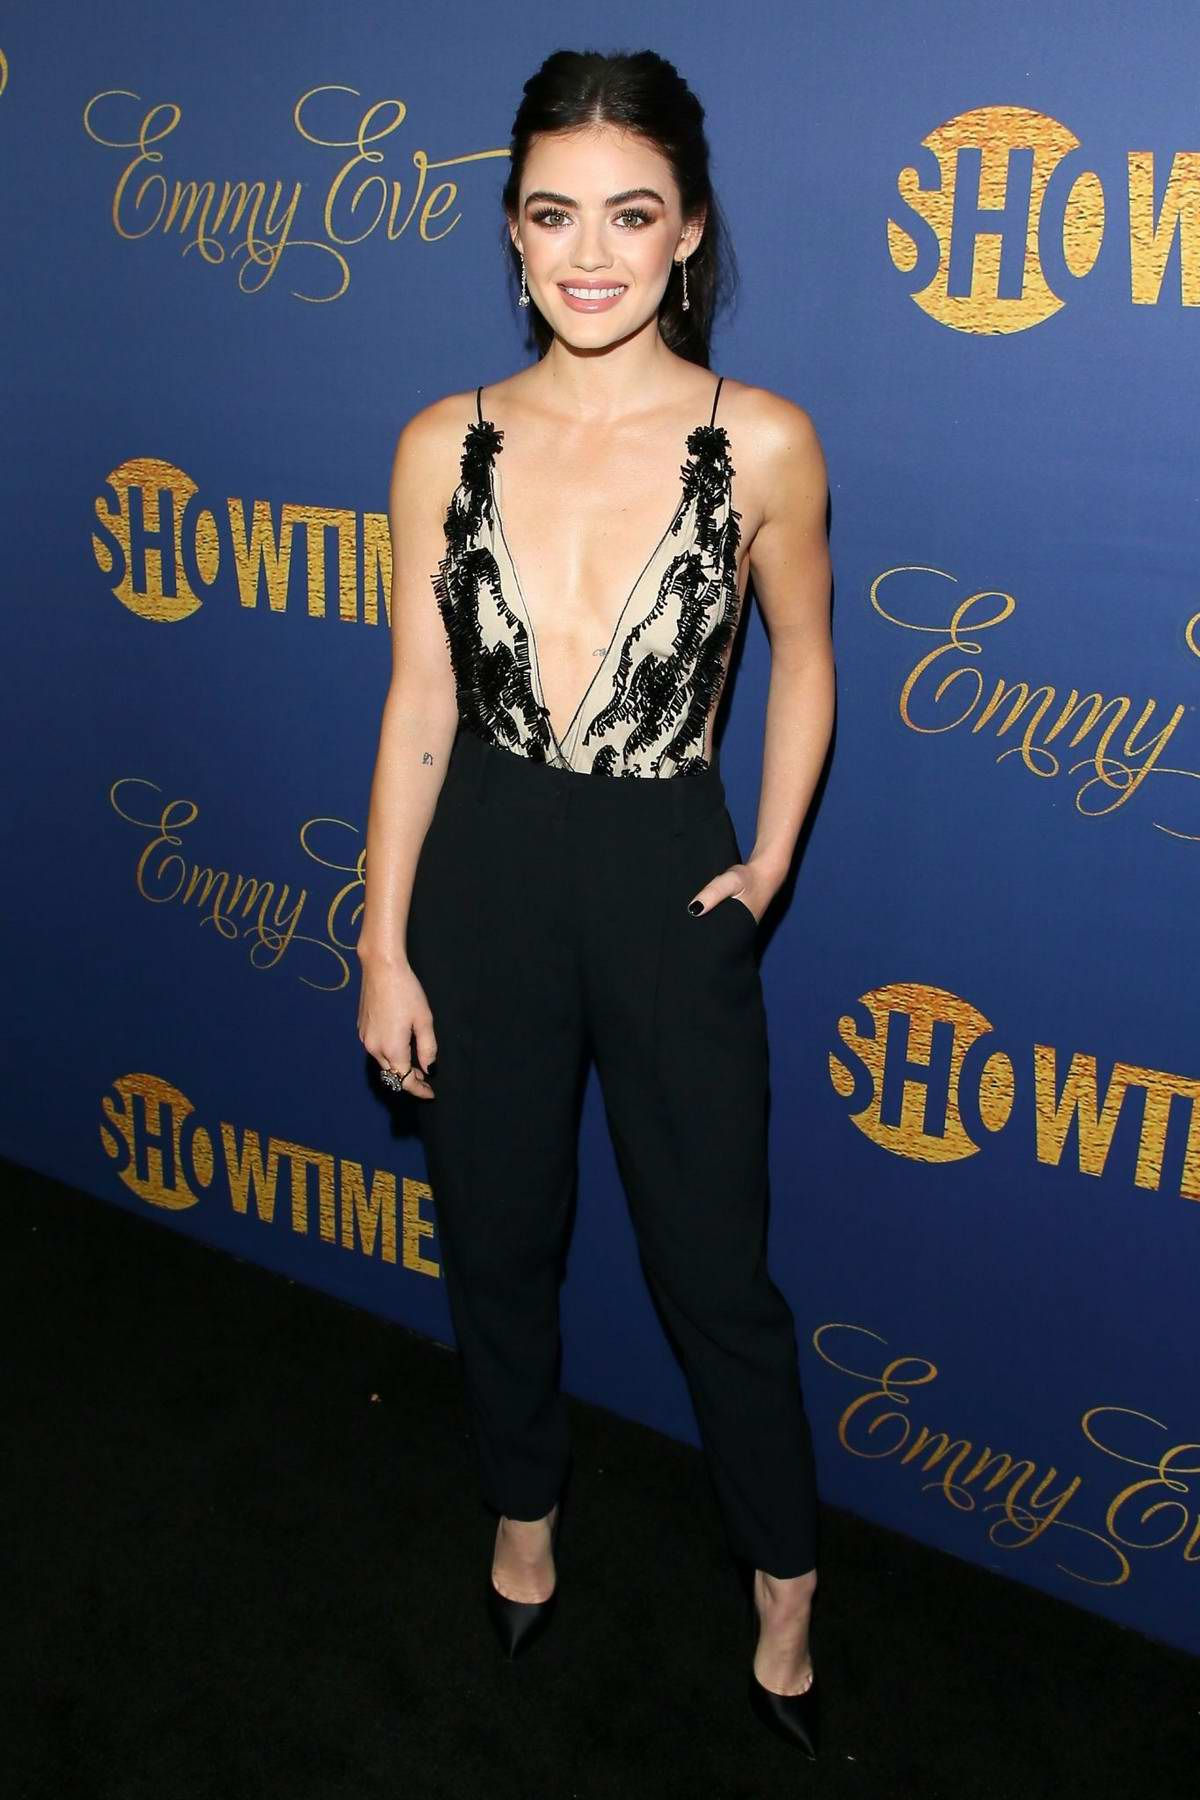 Lucy Hale attends Showtime EMMY Eve Nominees Celebration at Chateau Marmont in West Hollywood, Los Angeles